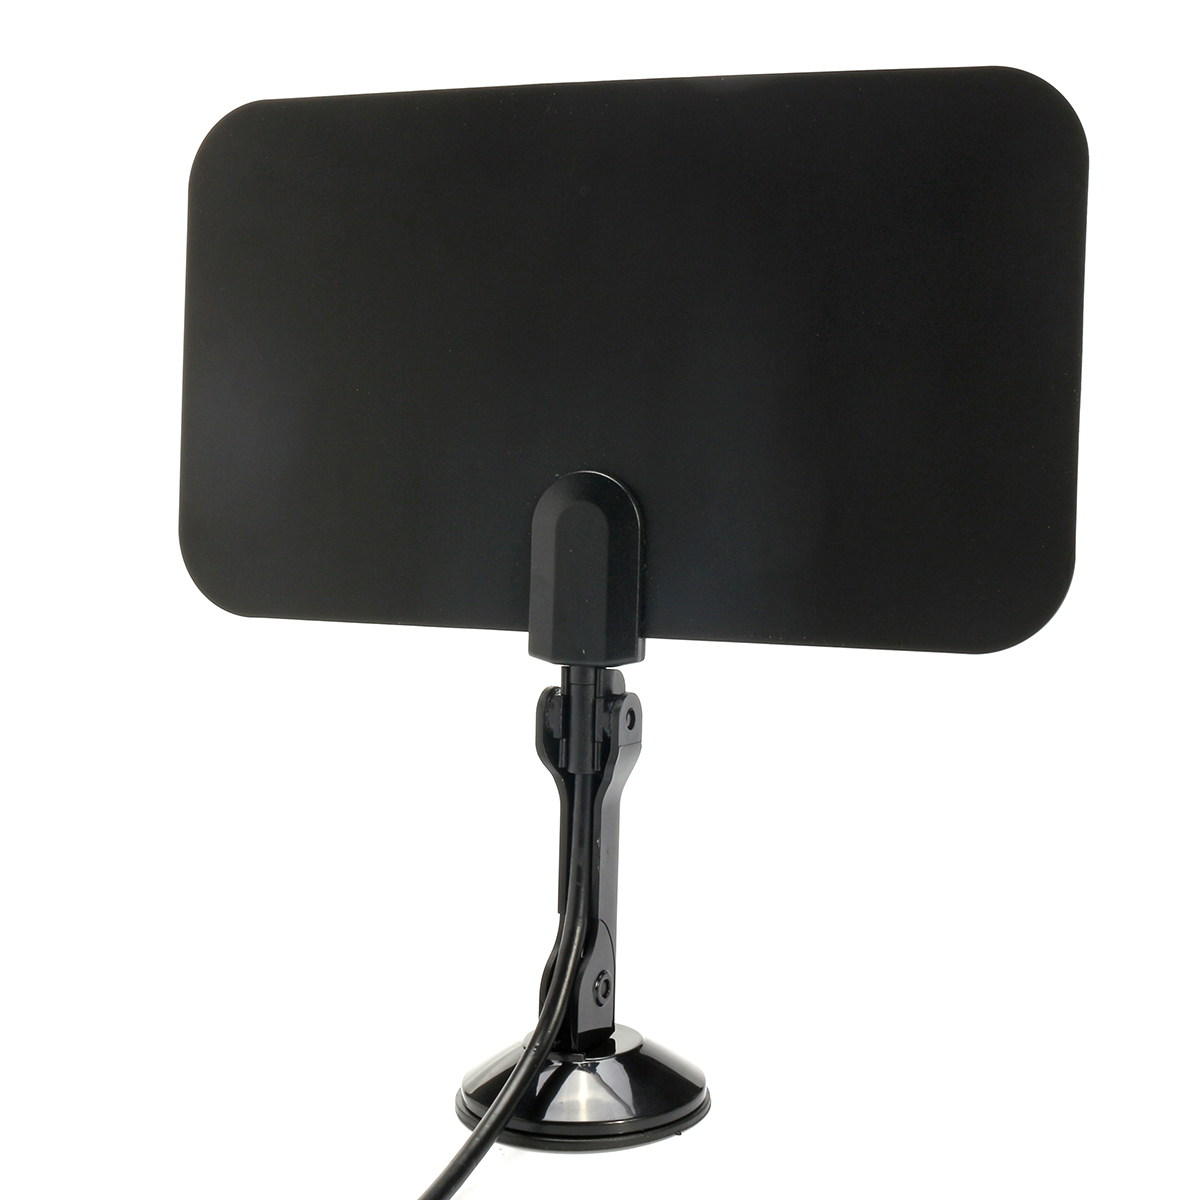 1.5M Flat Indoor Digital TV Antenna High Def for HDTV VHF UHF TV